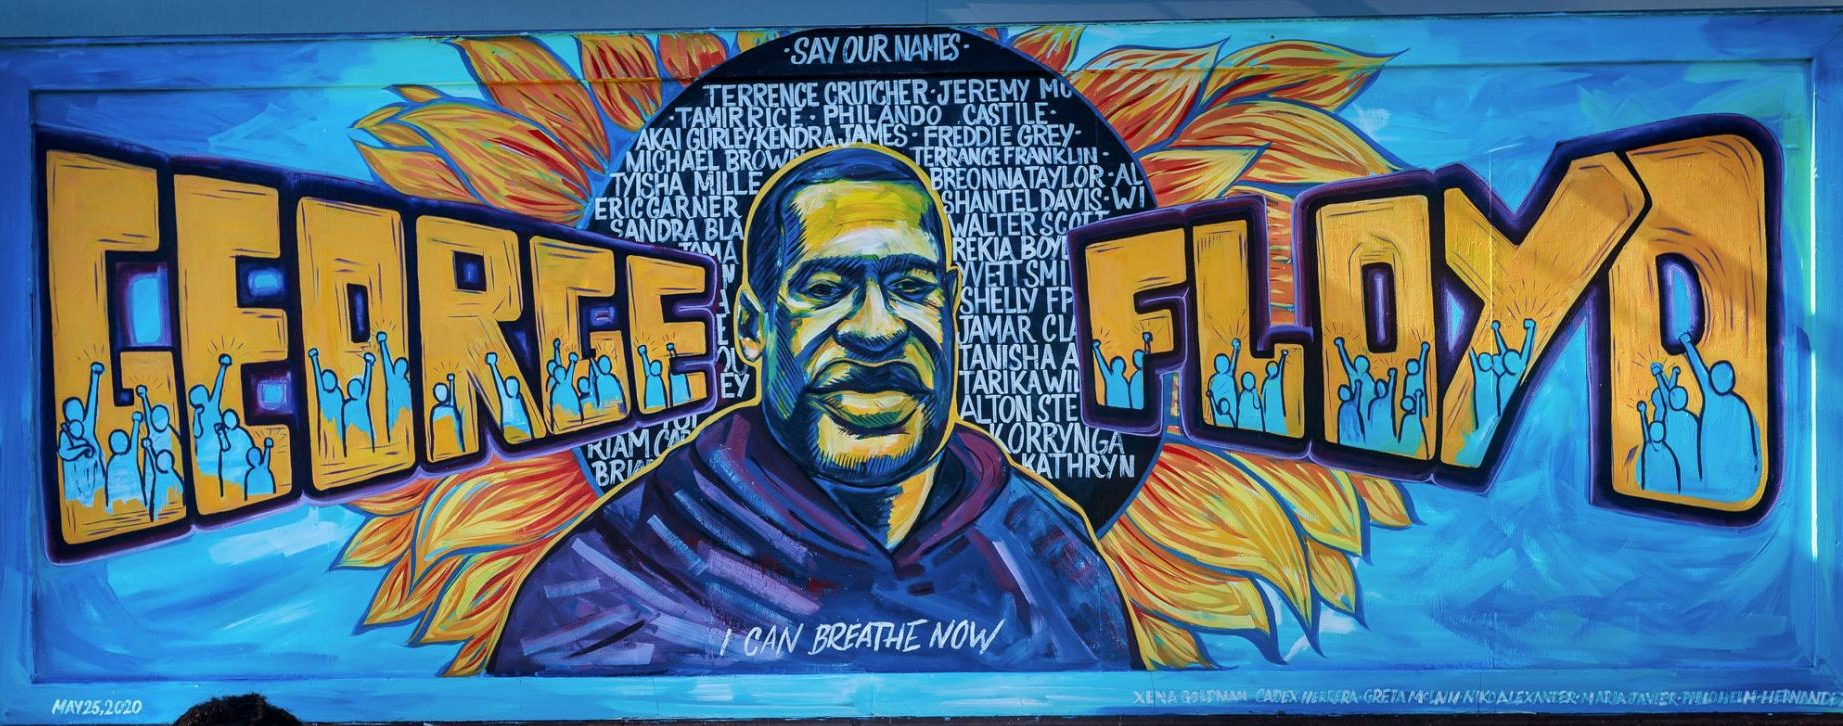 george floyd mural artwork in Minneapolis black justice and equality